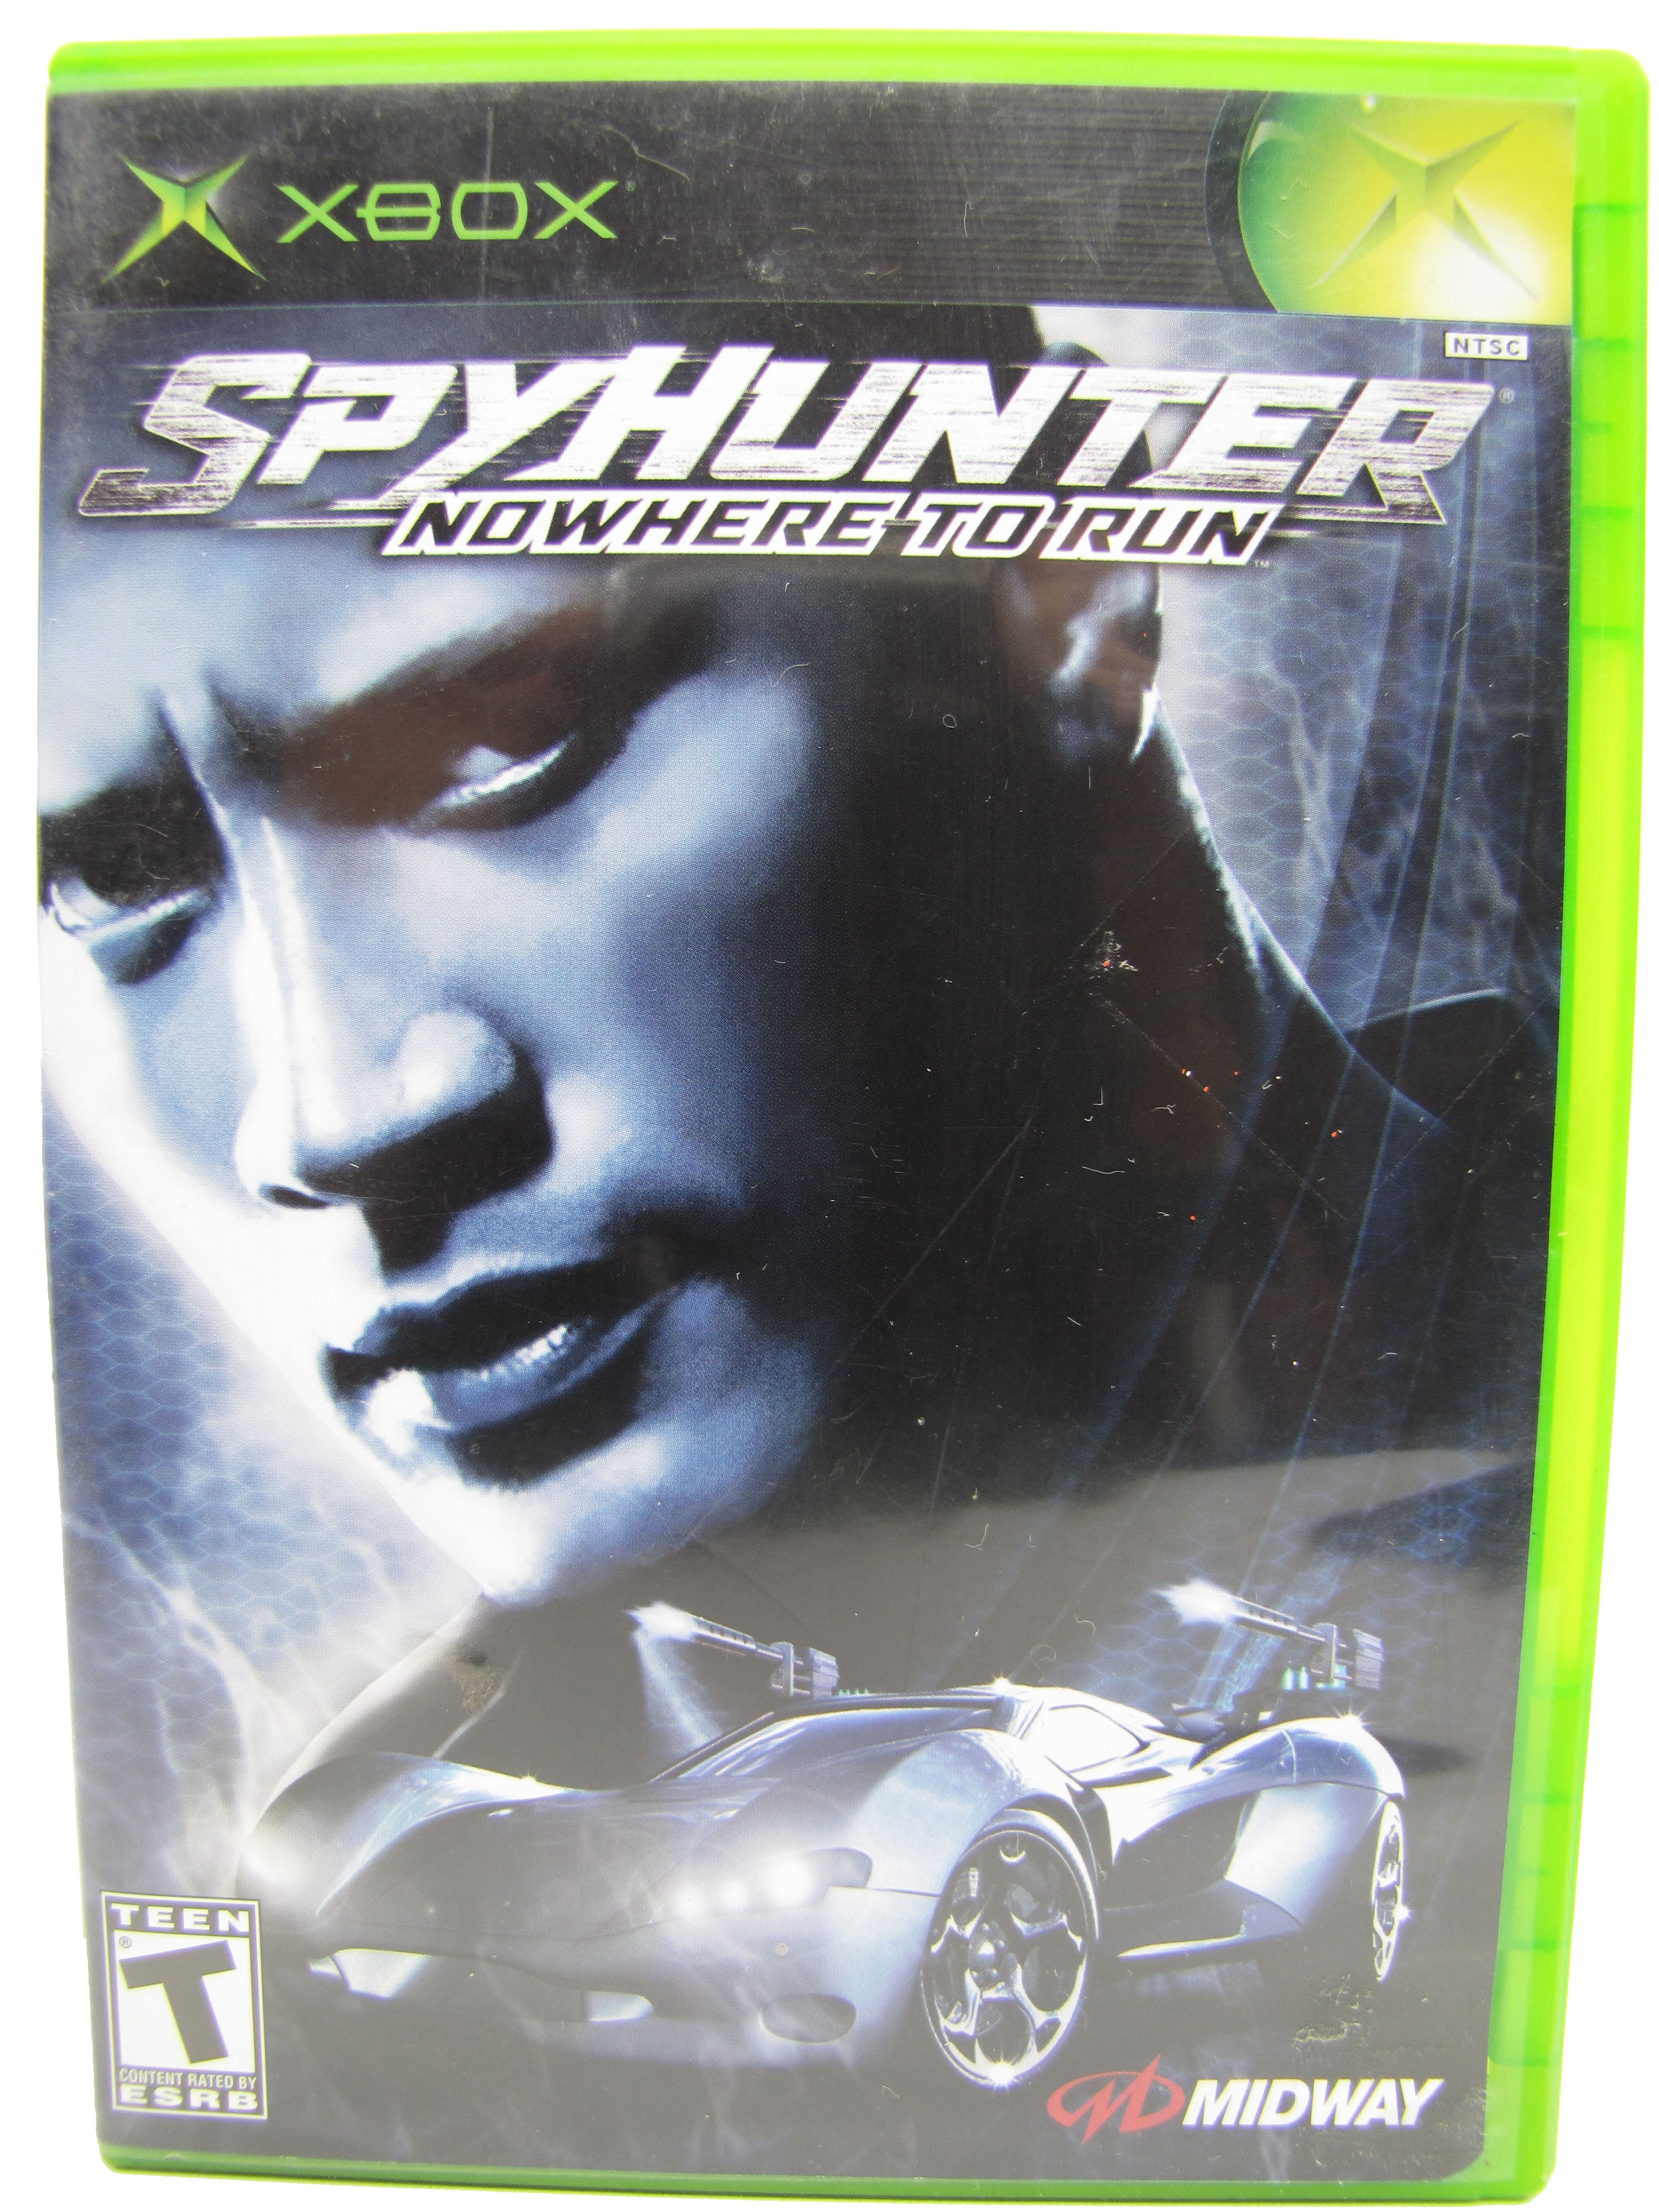 XBOX Spy Hunter: Nowhere to Run